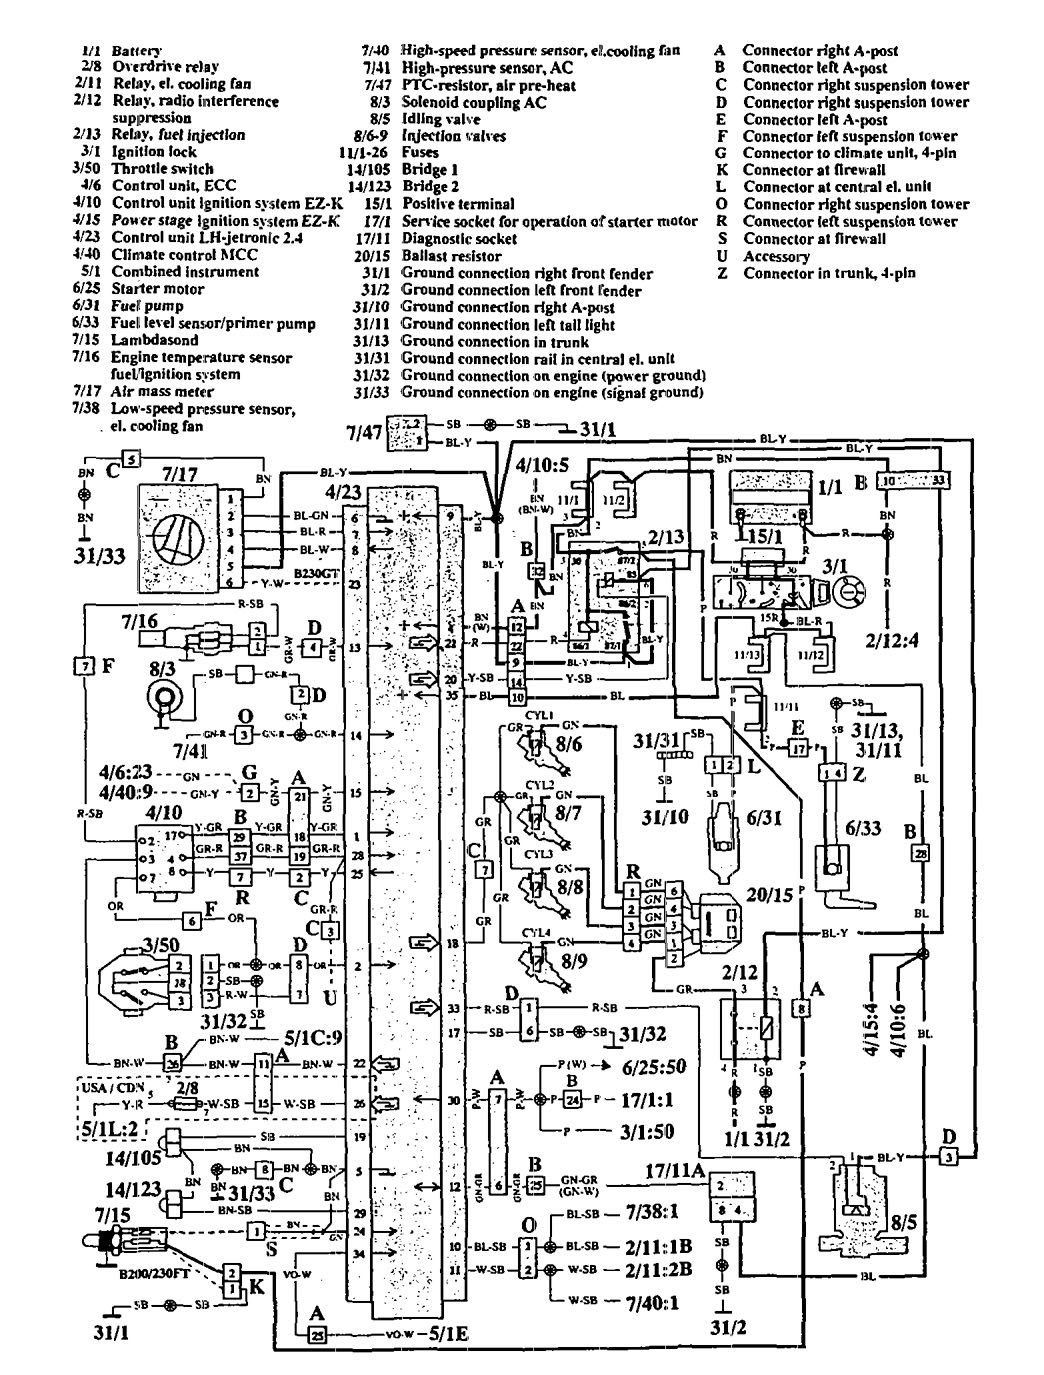 Volvo 240 Engine Diagram | Online Wiring Diagram on 1984 nissan pickup wiring diagram, 1984 dodge ramcharger wiring diagram, 1984 jeep cj7 wiring diagram, 1984 ford bronco wiring diagram, 1984 jeep cherokee wiring diagram, 1984 jaguar xj6 wiring diagram, 1984 suzuki samurai wiring diagram, 1984 porsche 928 wiring diagram, 1984 cadillac eldorado wiring diagram,